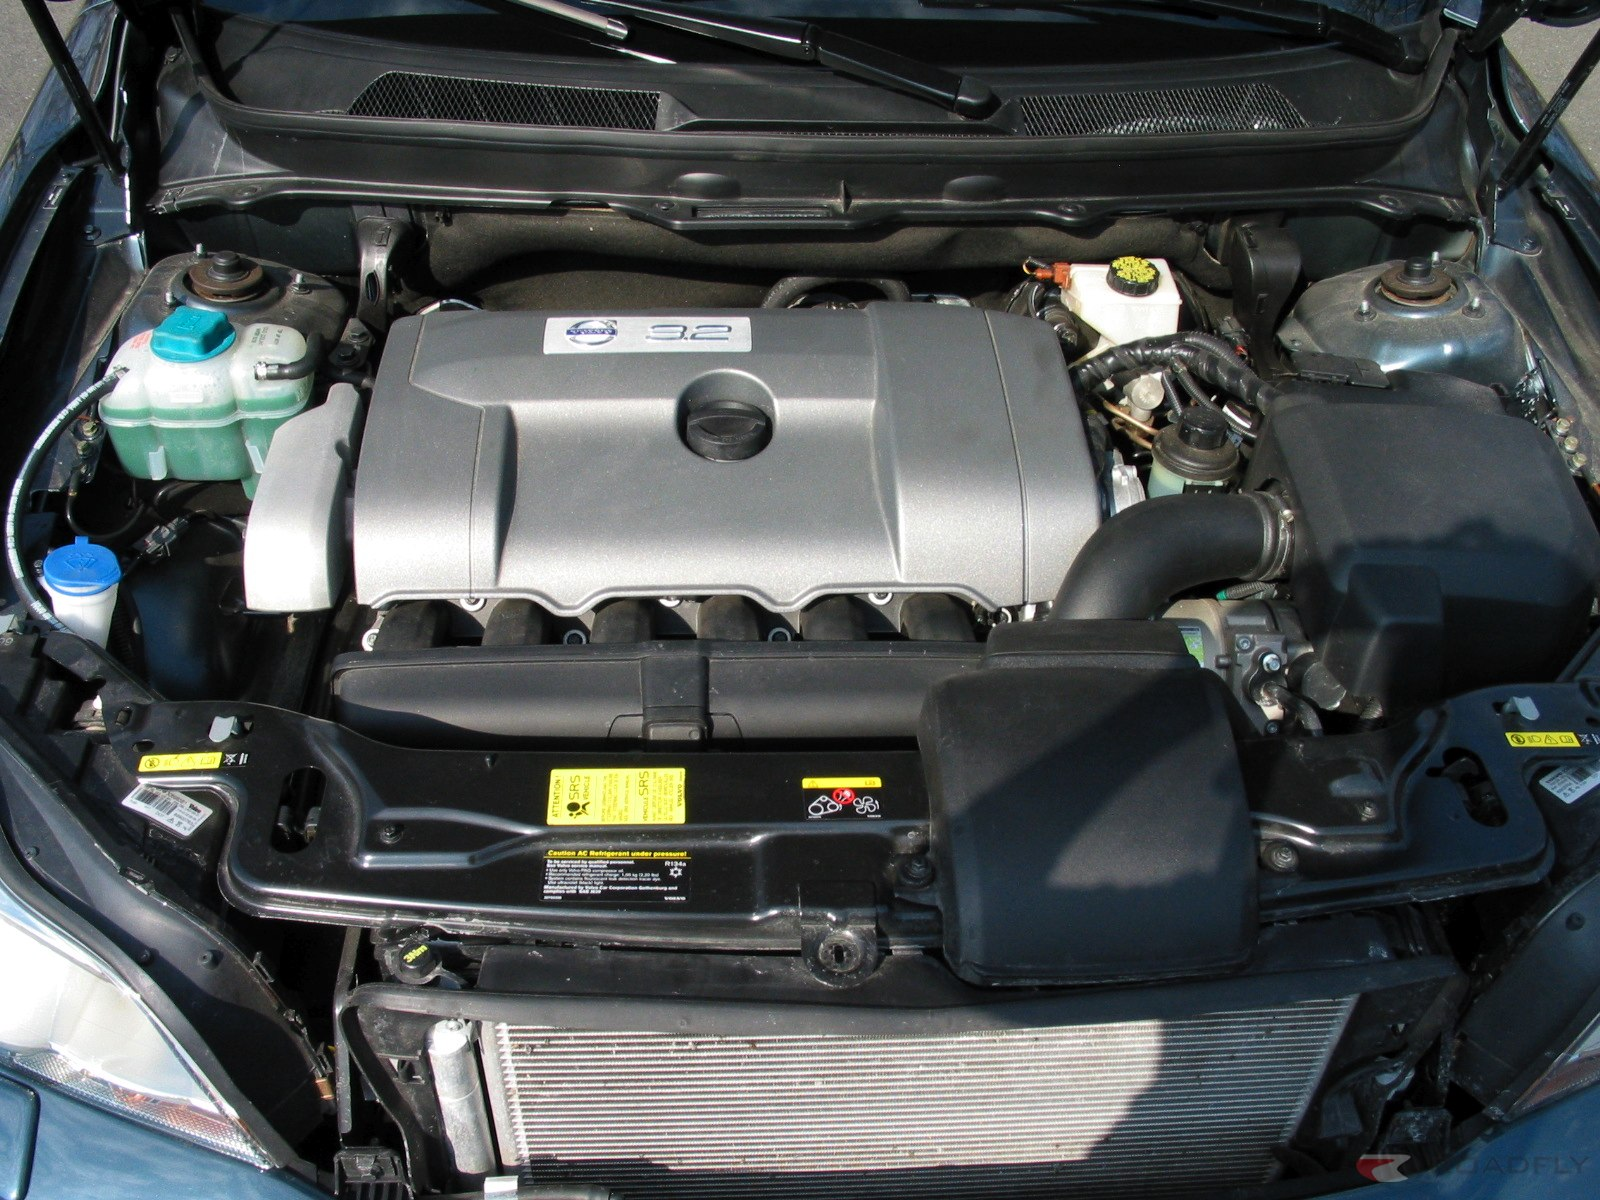 Volvo XC engine #2